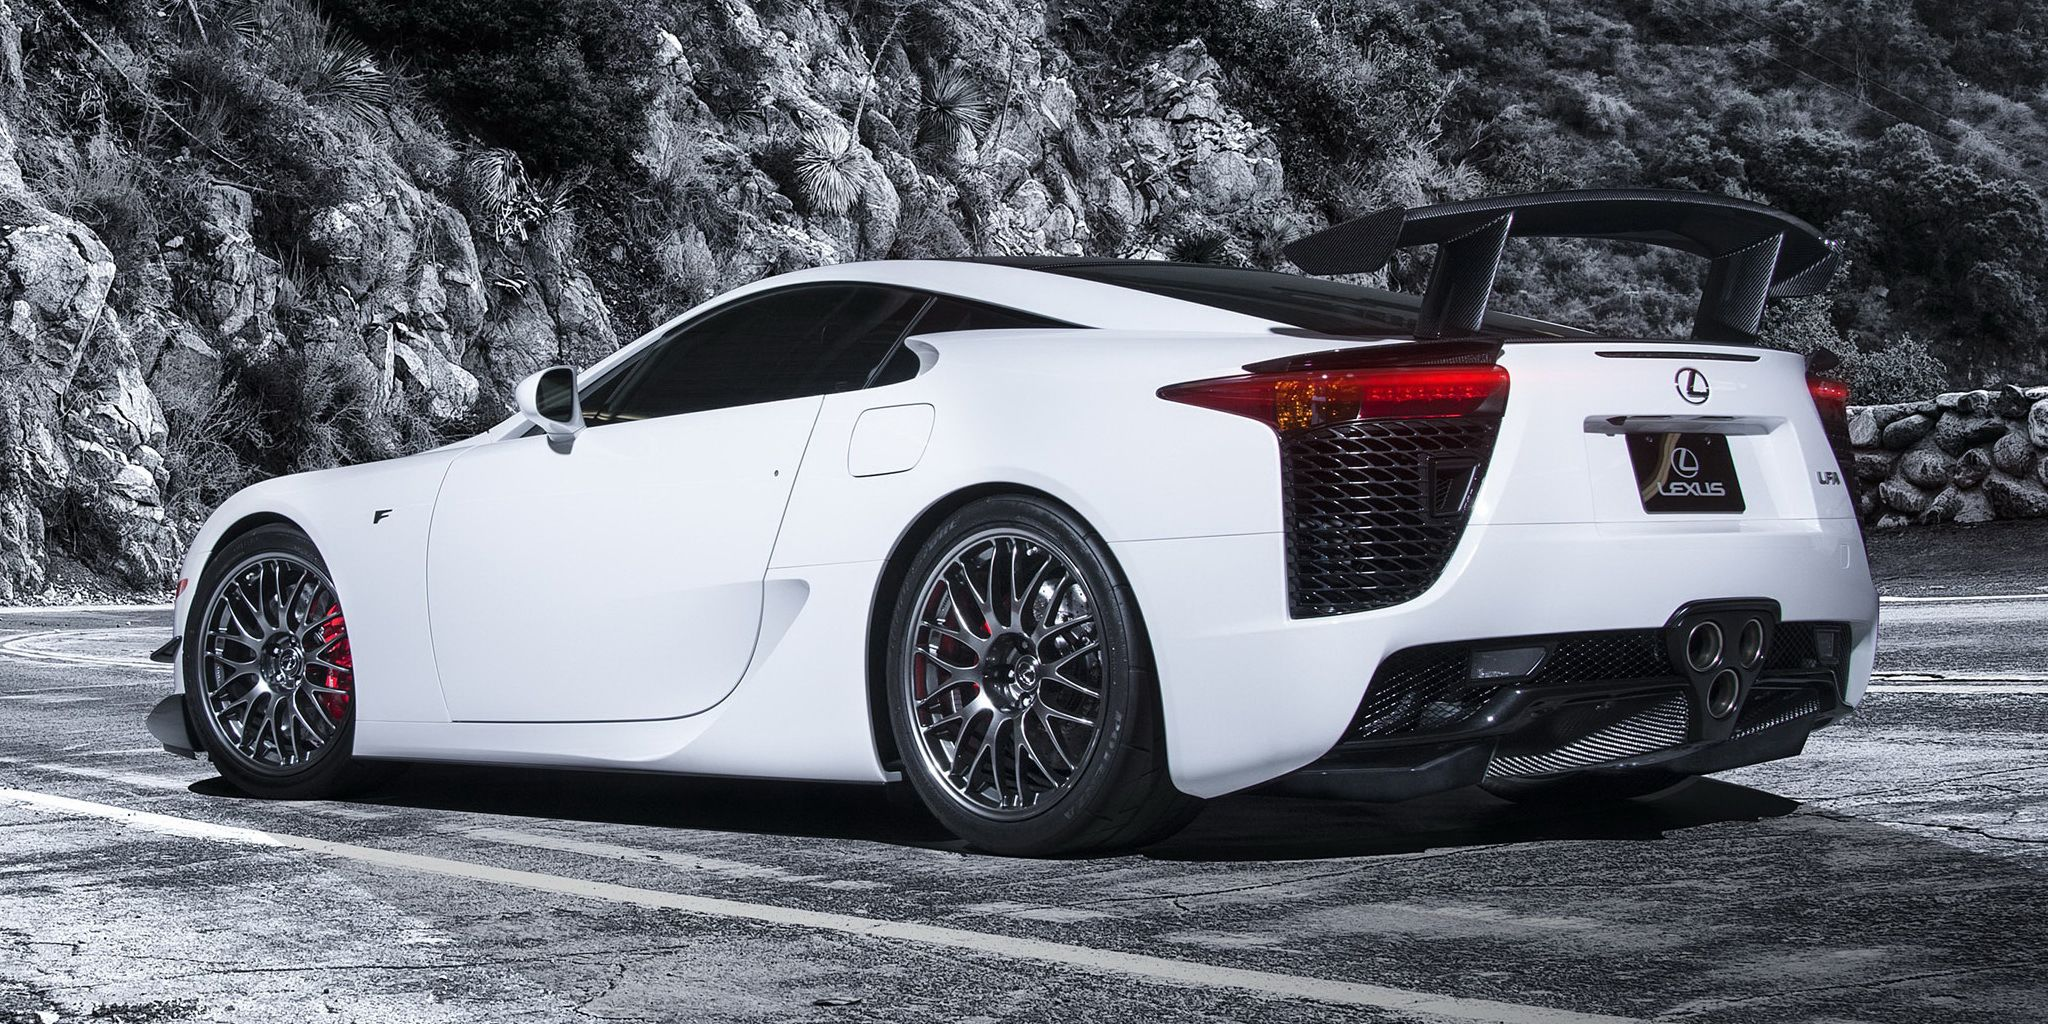 New 800hp Lexus Lfa Will Debut At 2019 Tokyo Motor Show Says Wildly Unsubstantiated Rumor